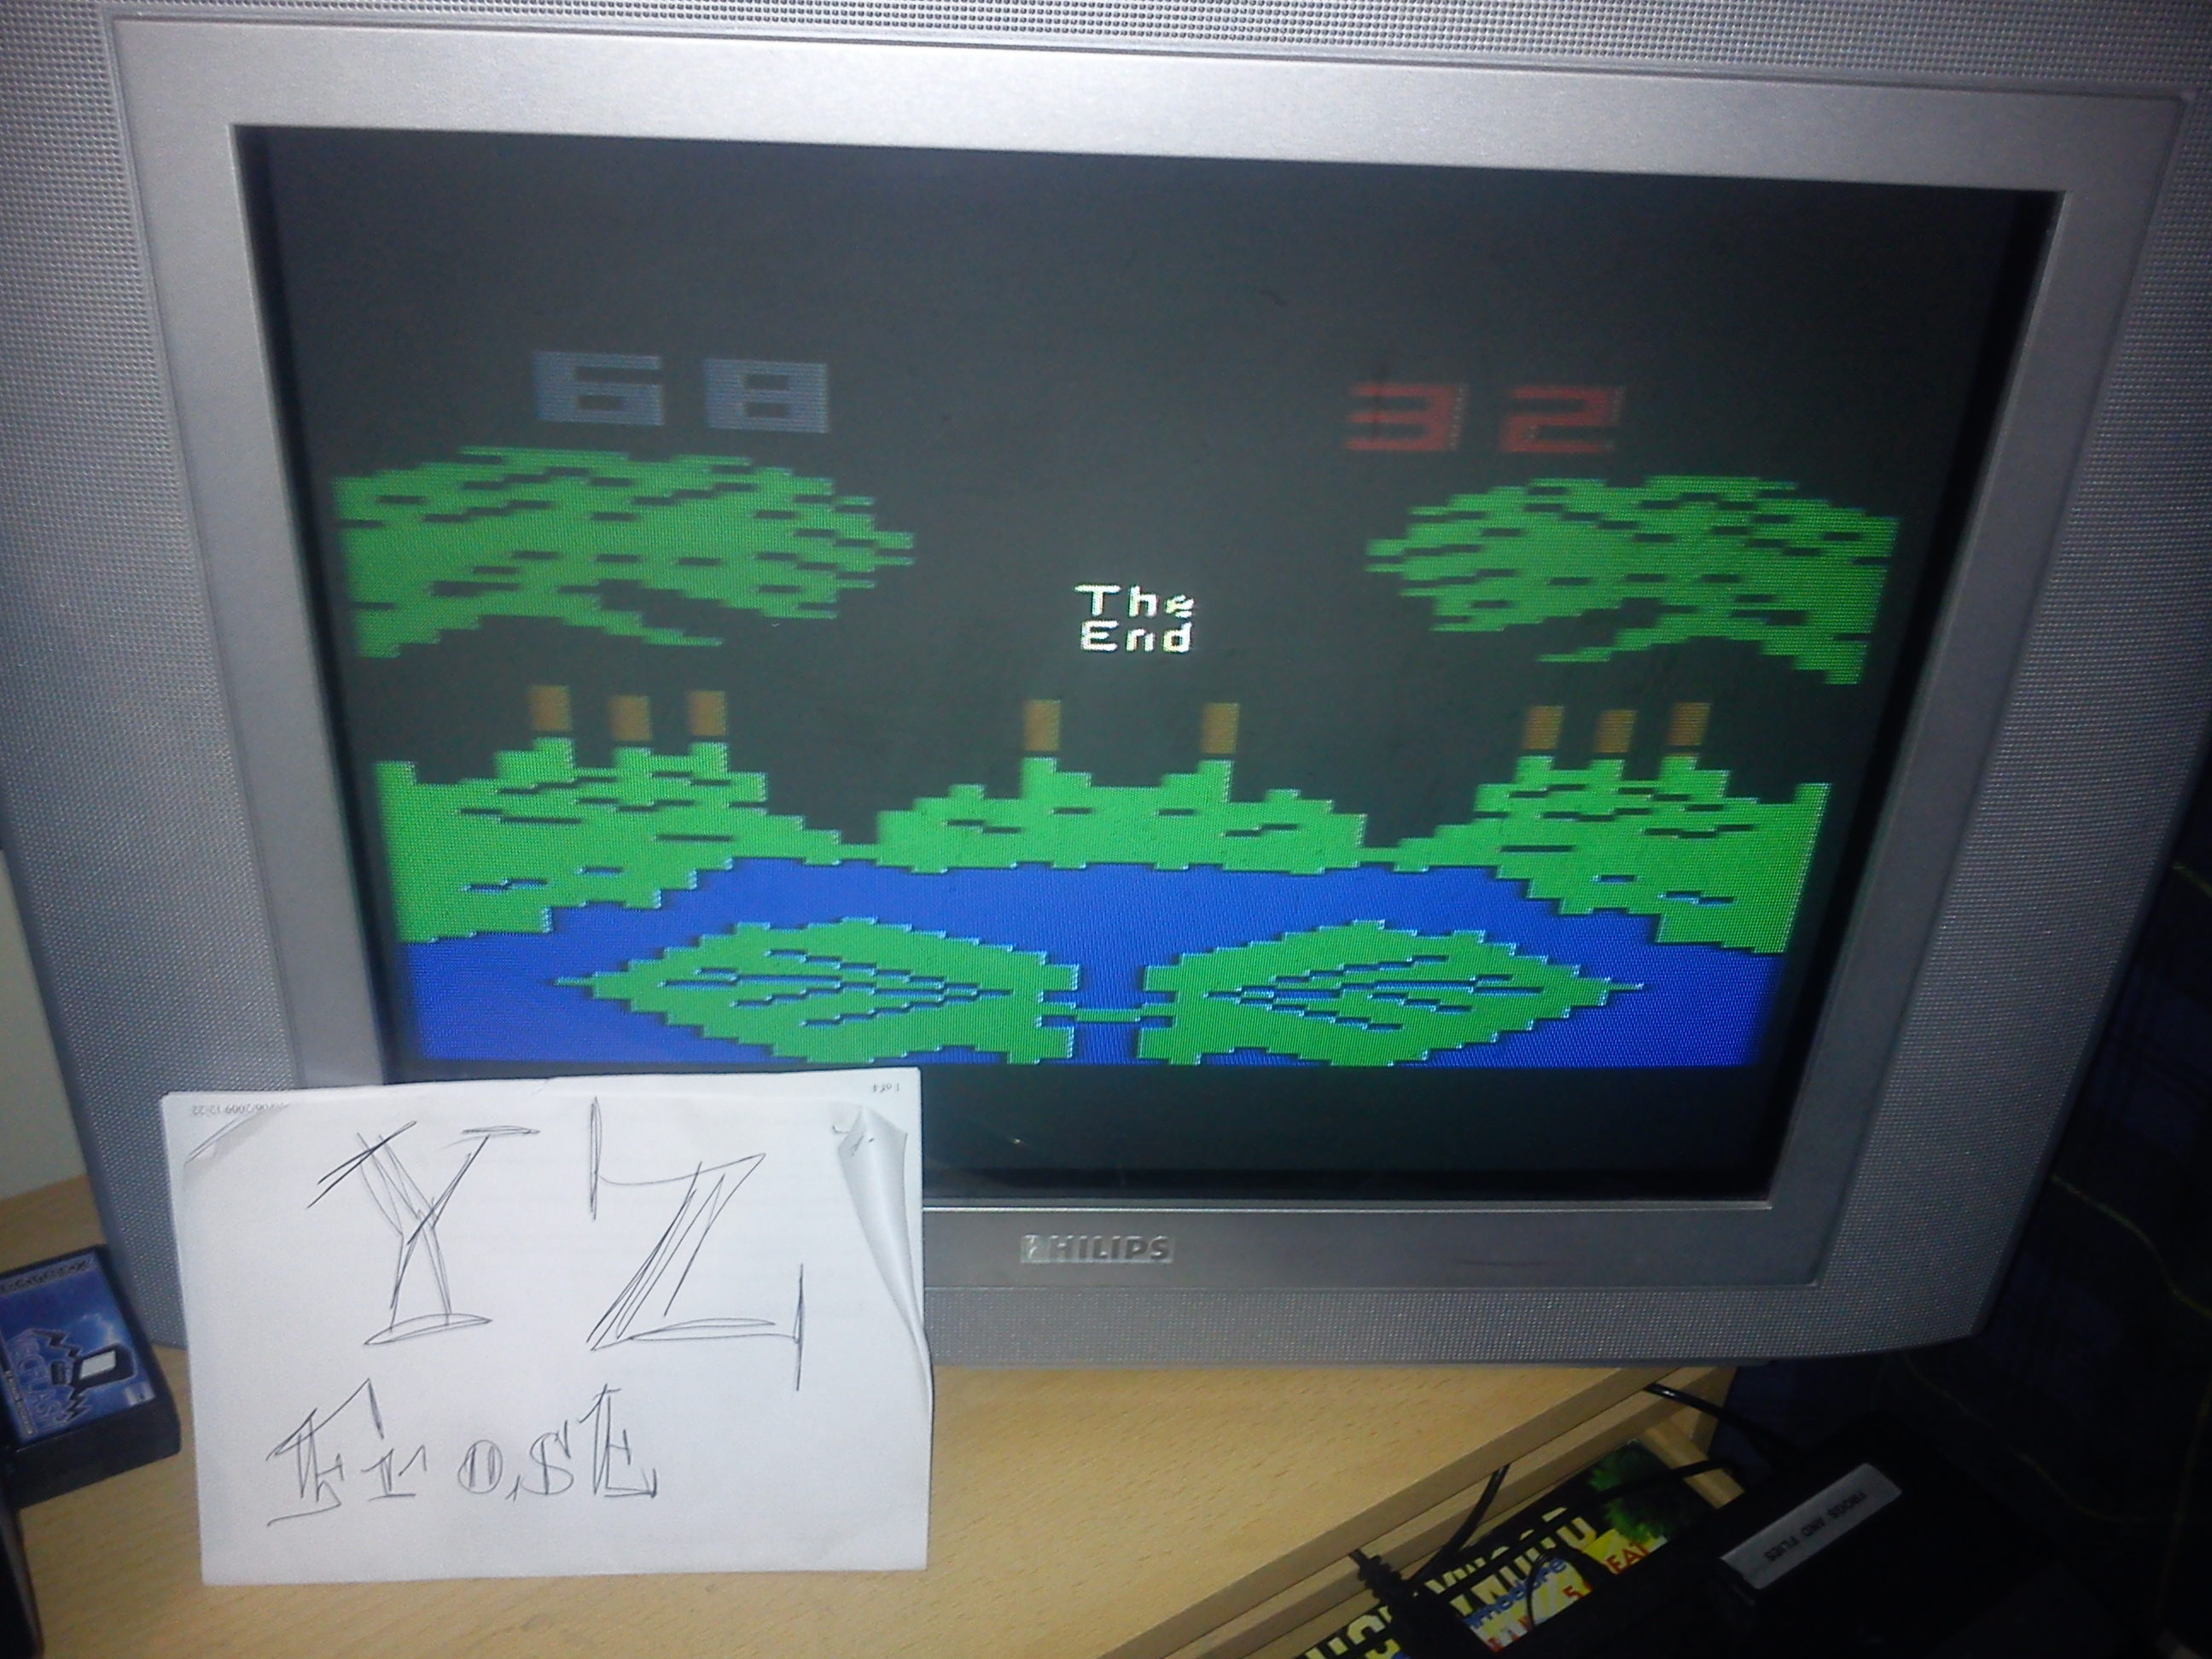 Fr0st: Frogs and Flies (Atari 2600 Novice/B) 68 points on 2014-11-17 18:25:13